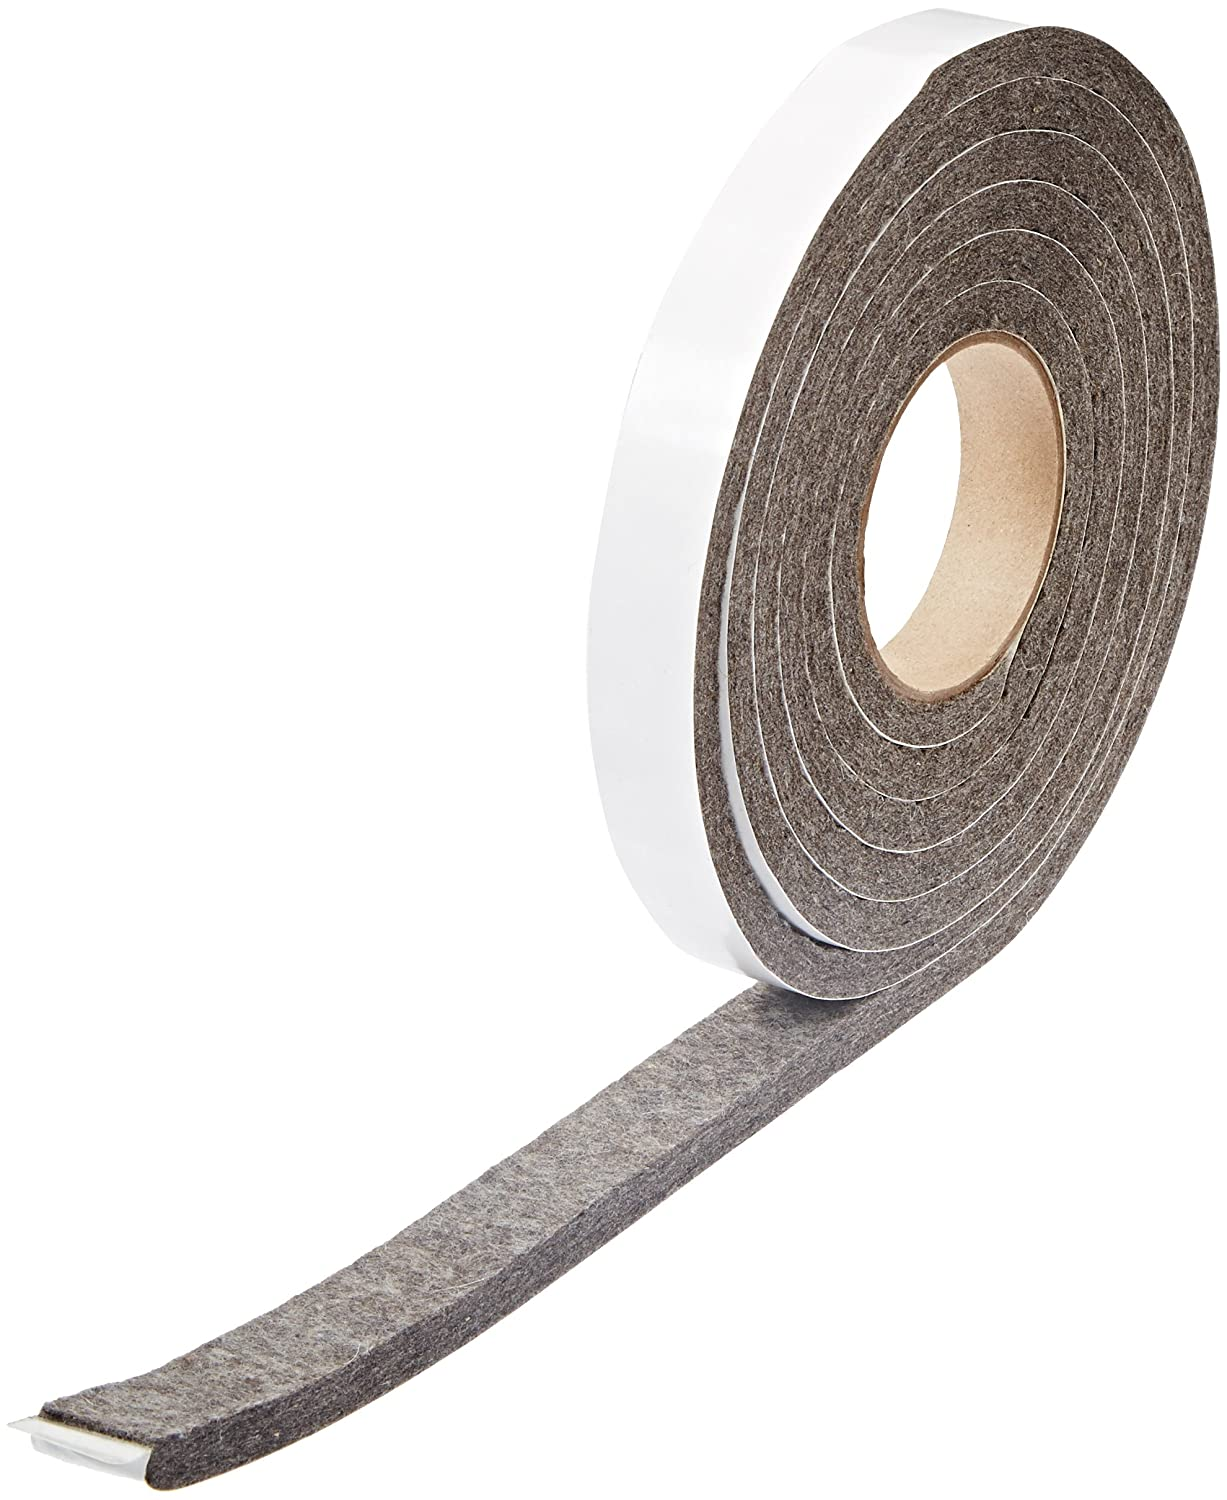 Grade F7 Pressed Wool Felt Strip, Gray, Meets SAE J314, Adhesive Backed